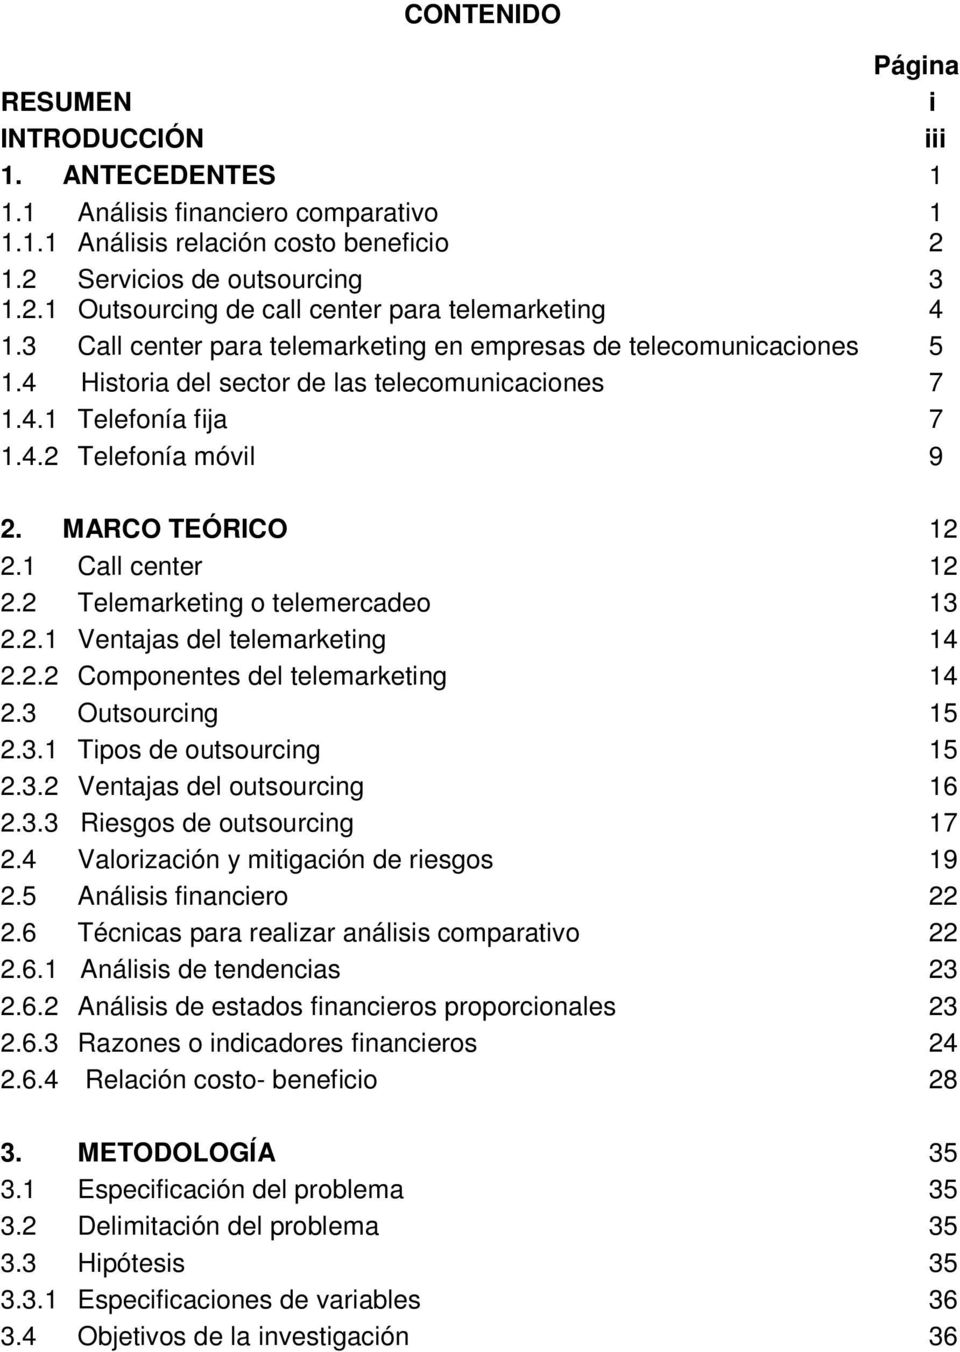 1 Call center 12 2.2 Telemarketing o telemercadeo 13 2.2.1 Ventajas del telemarketing 14 2.2.2 Componentes del telemarketing 14 2.3 Outsourcing 15 2.3.1 Tipos de outsourcing 15 2.3.2 Ventajas del outsourcing 16 2.